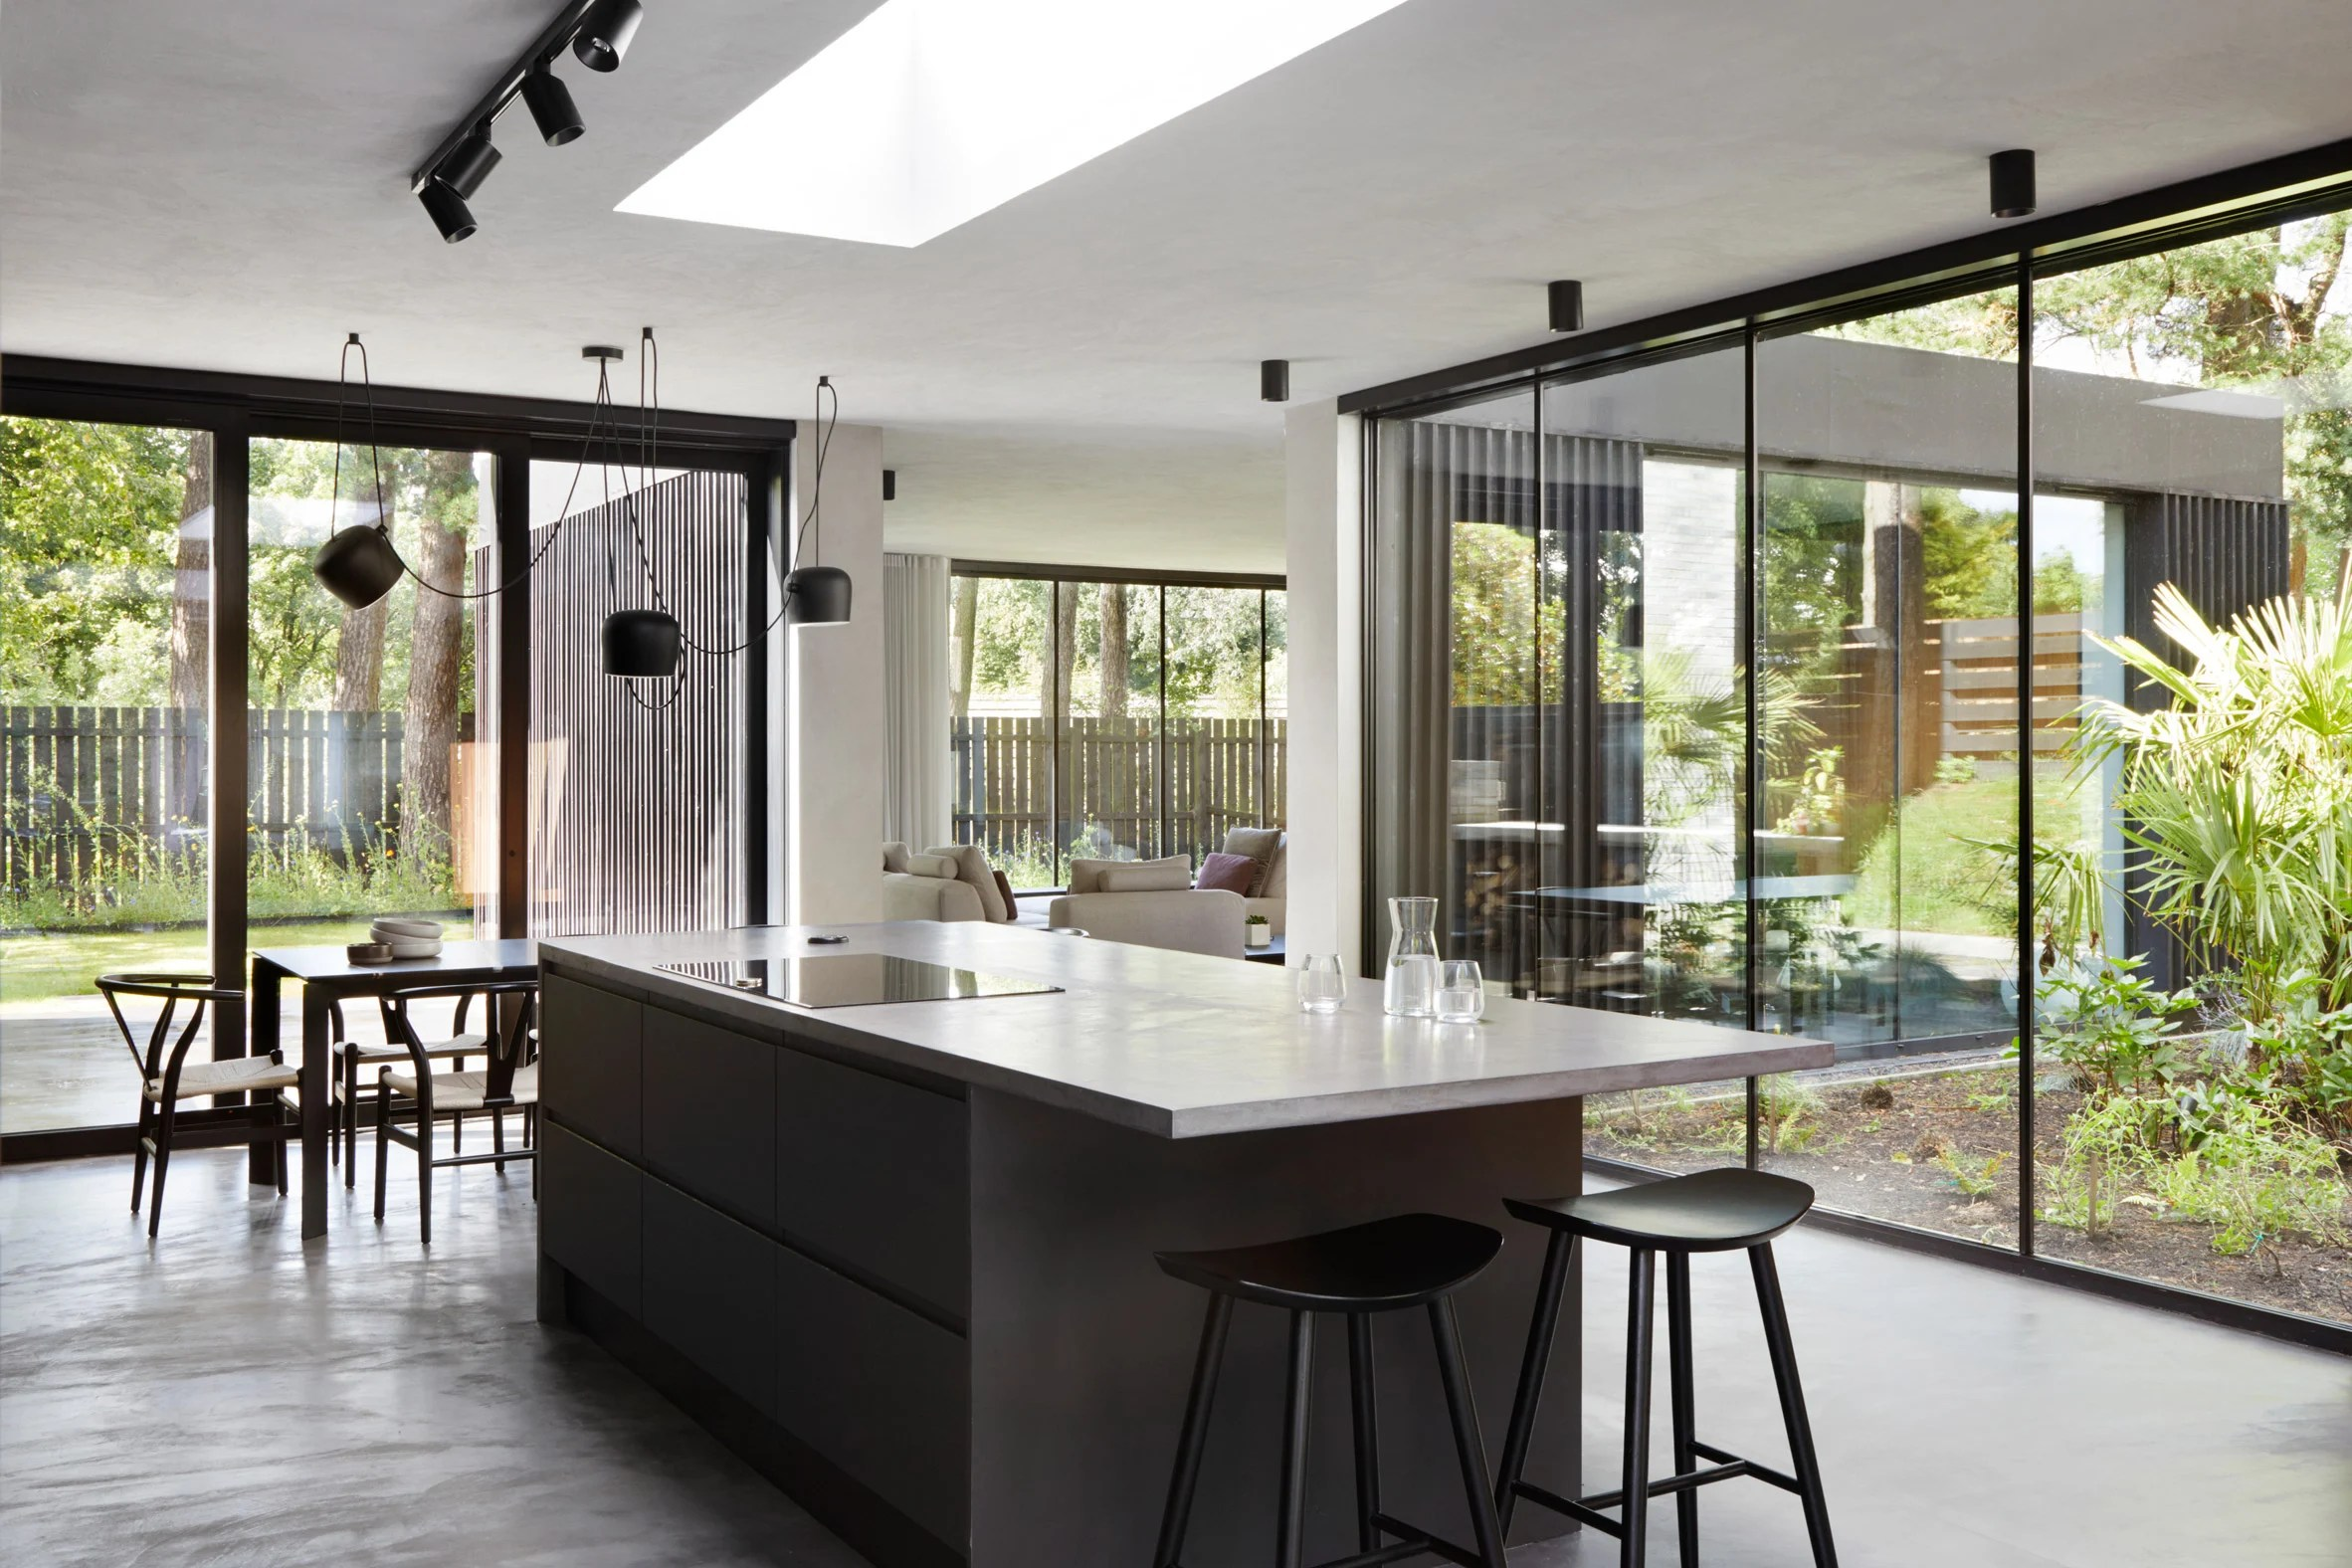 A minimalist kitchen within a house in Glasgow